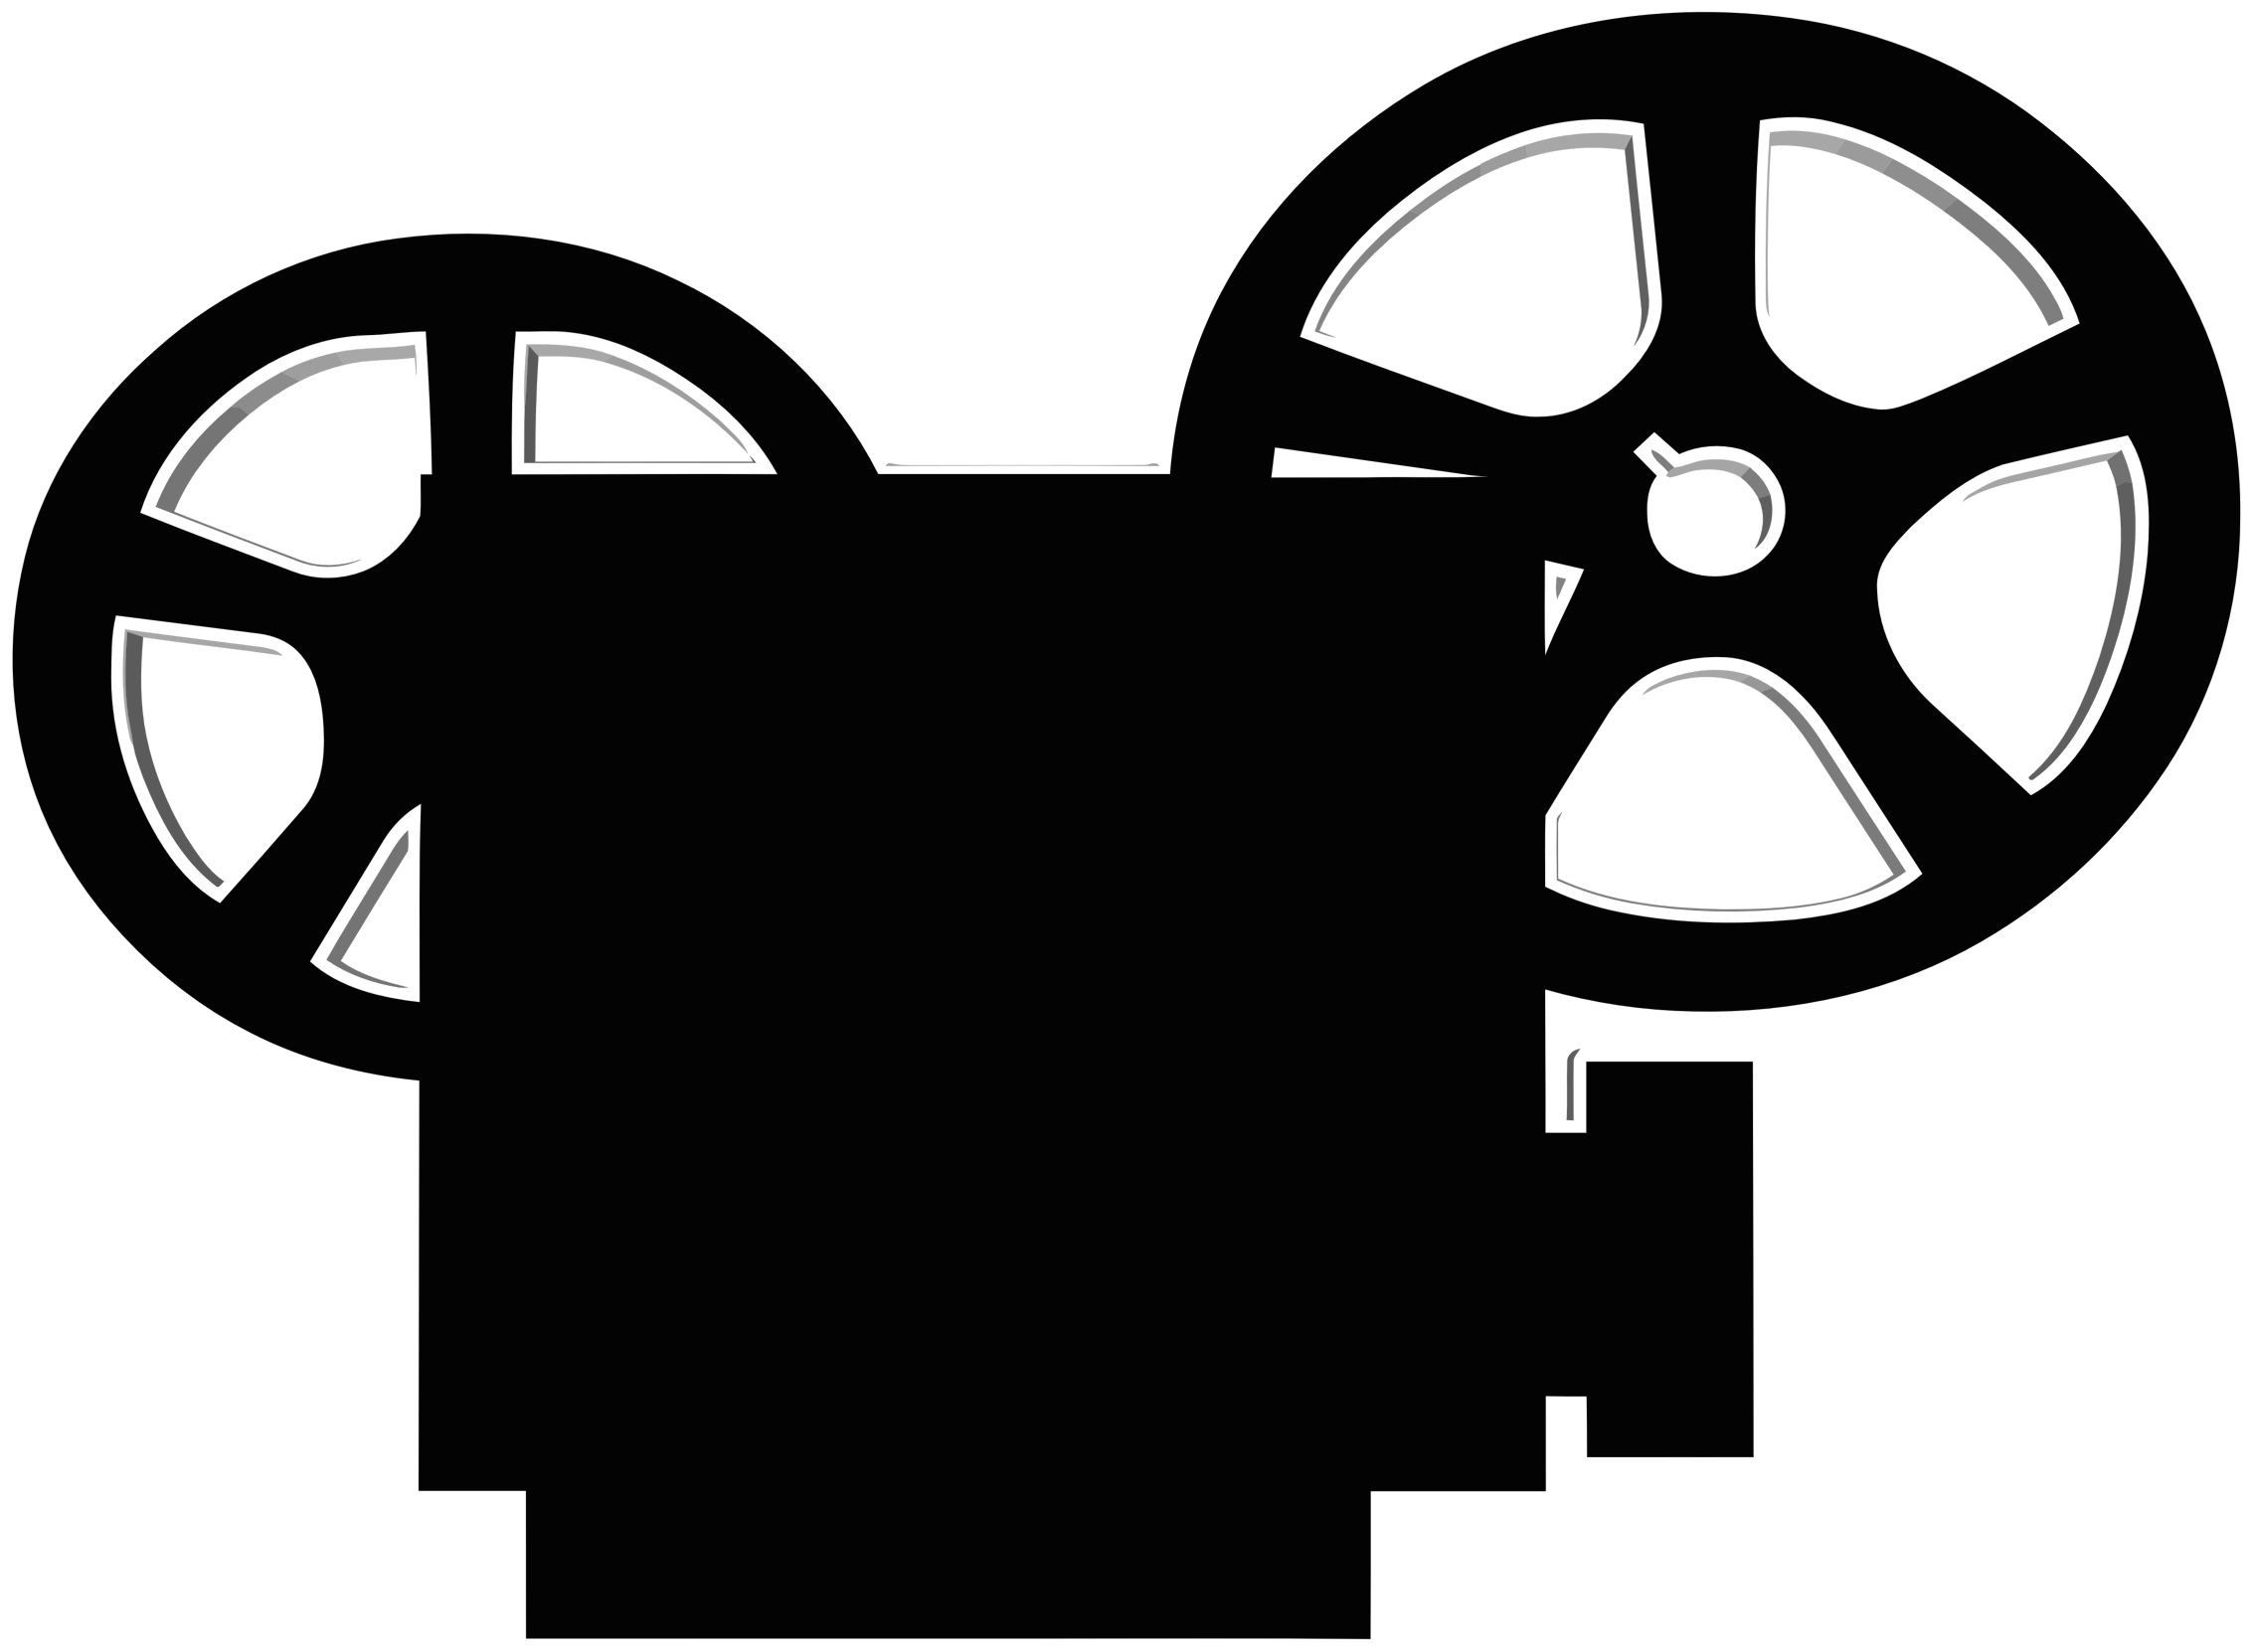 Movie projector images clipart png stock Movie Projector Icon Clipart transparent PNG - StickPNG png stock